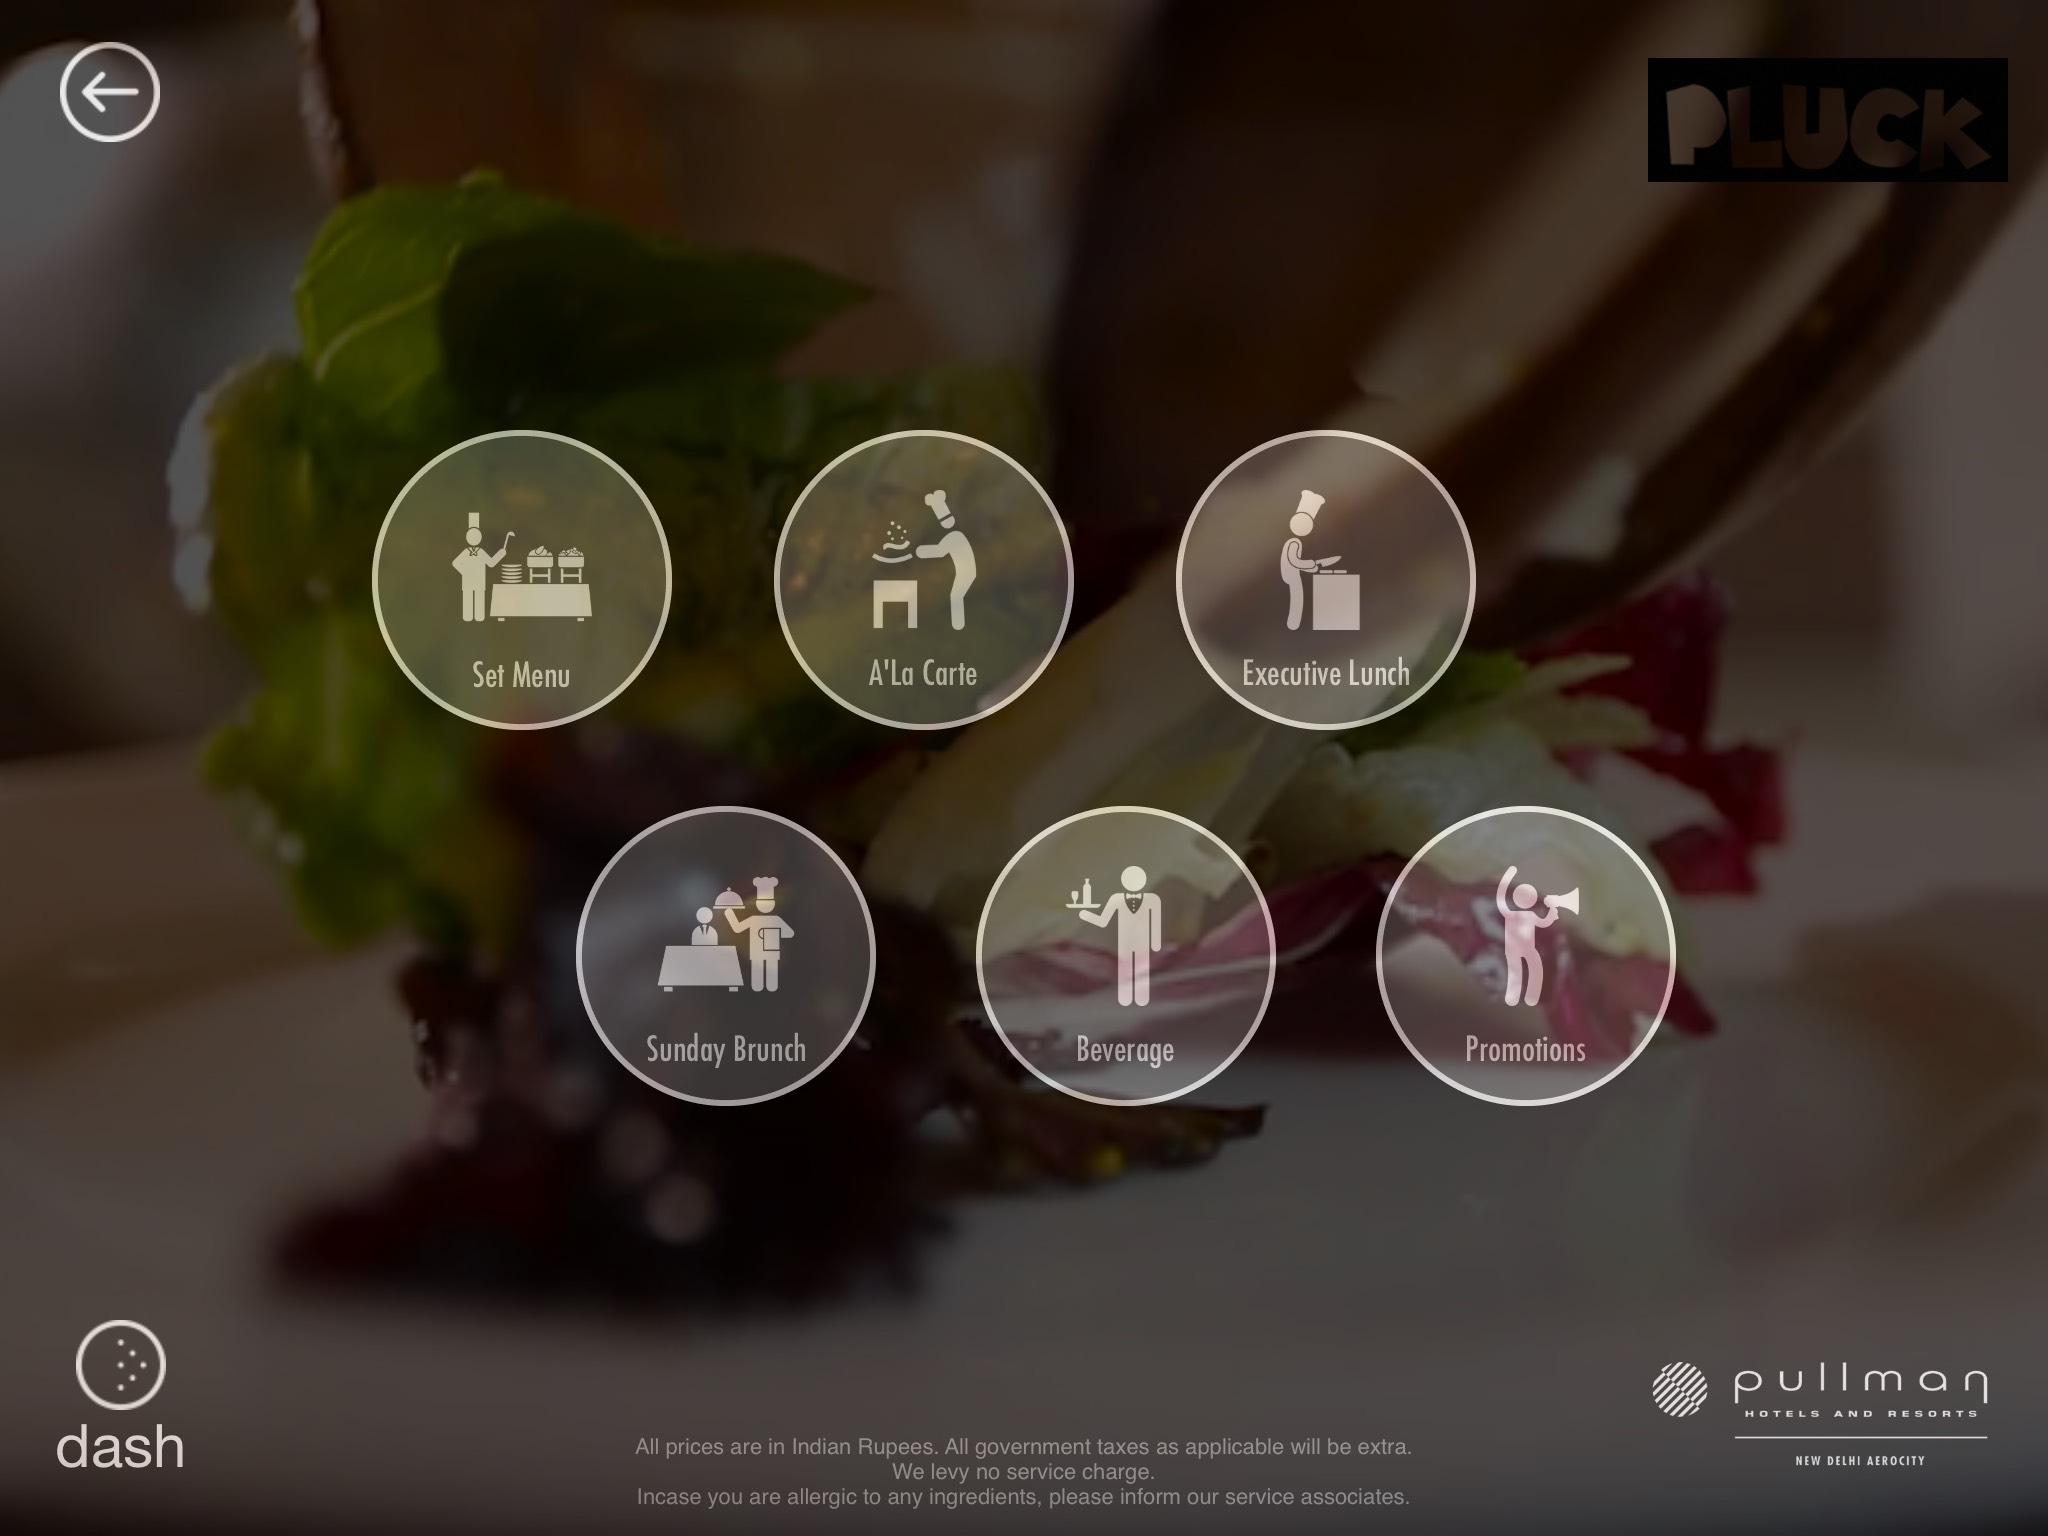 IdeaChakki Dash Menu iPad App for restaurants like Taj Pullman and ITC